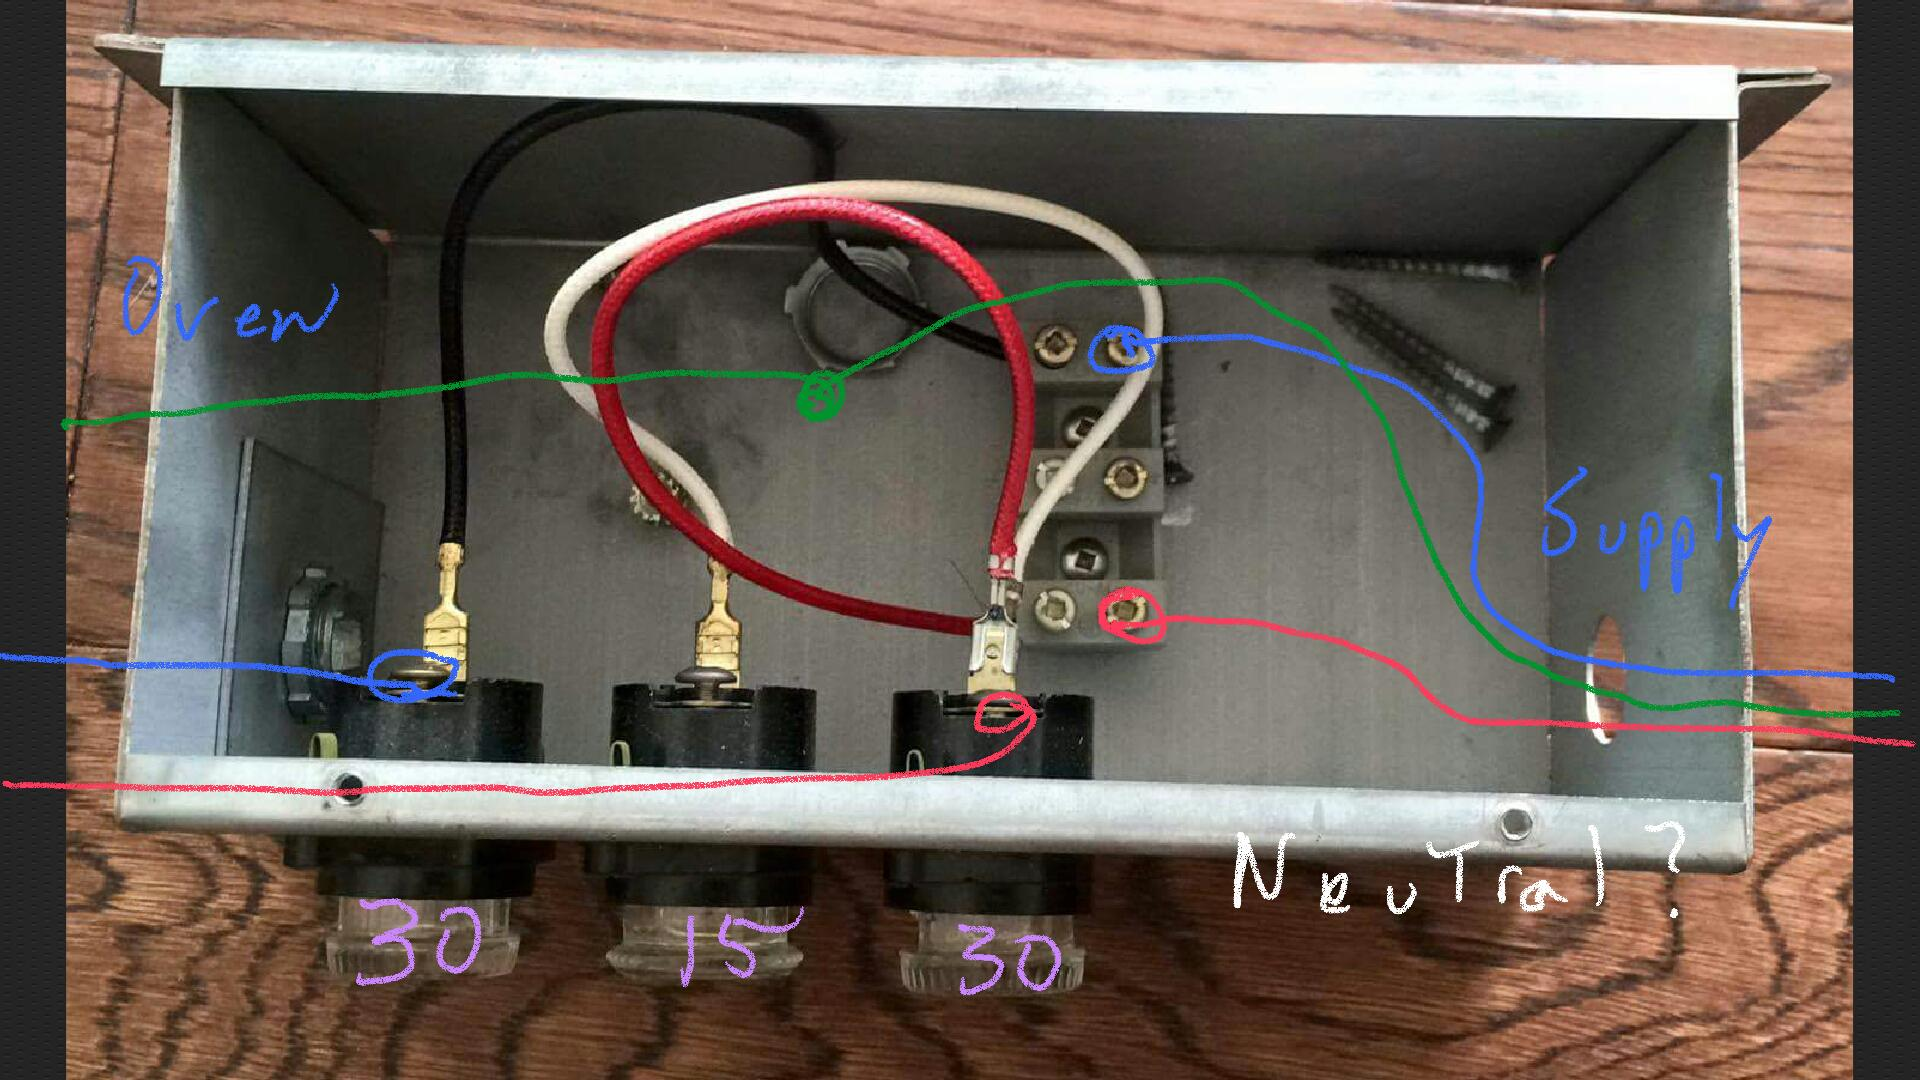 Outstanding Electrical Wire A 30A 15A 30A Fuse Box To A 4 Wire 120V 240V Oven Wiring Cloud Genionhyedimohammedshrineorg